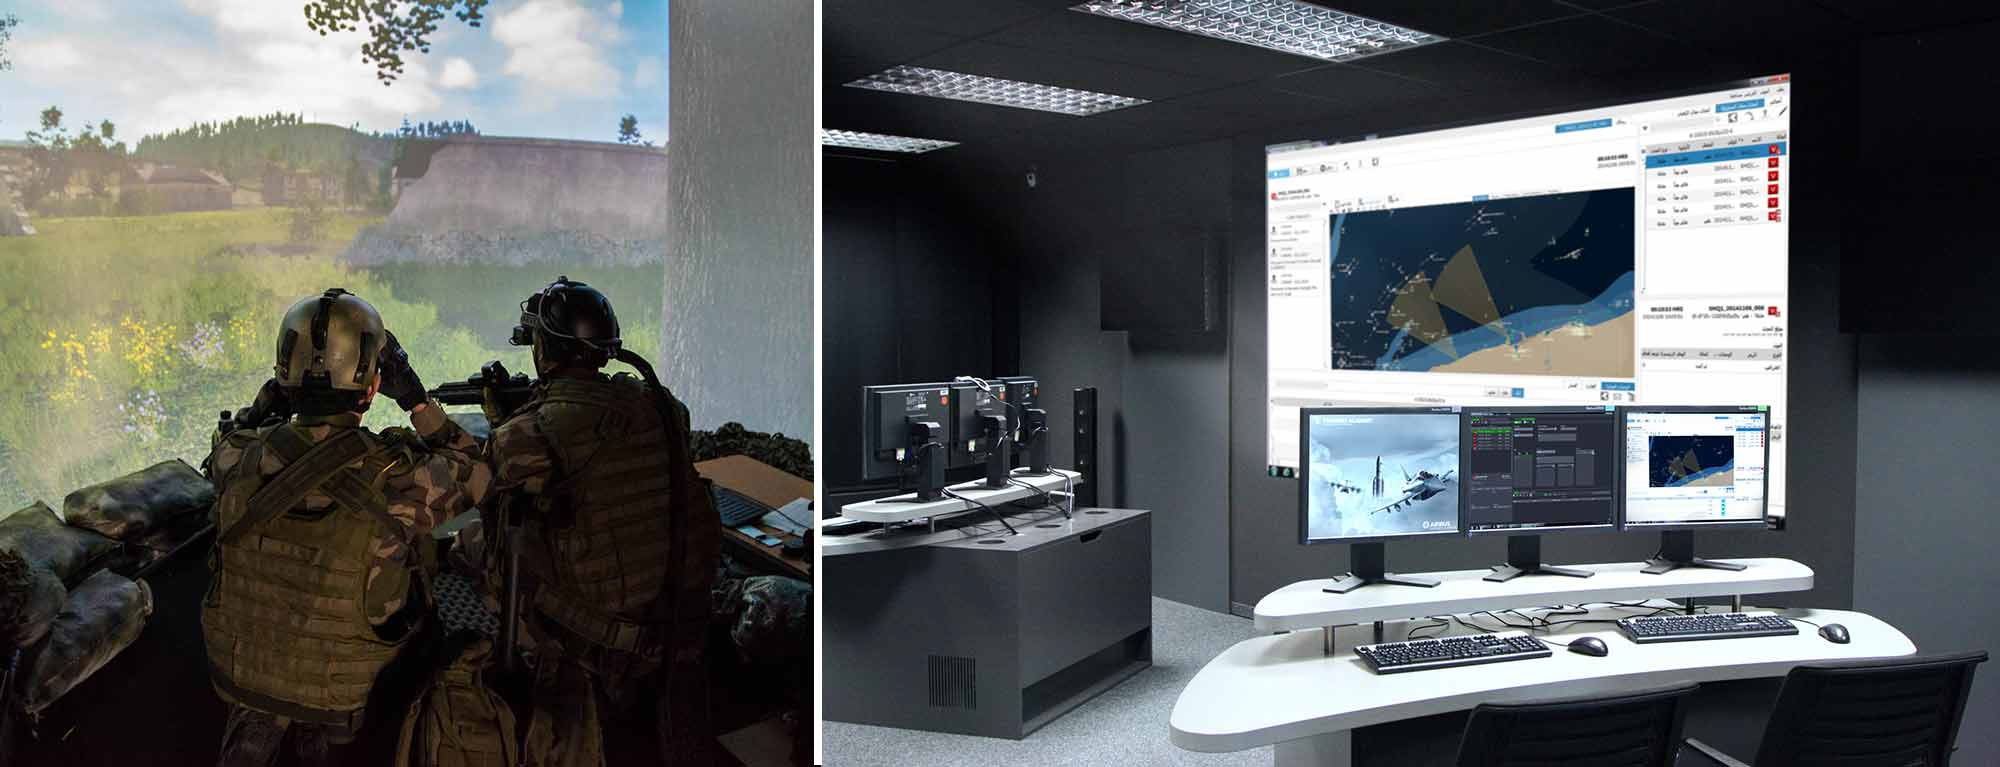 Airbus Intelligence provides really immersive simulations